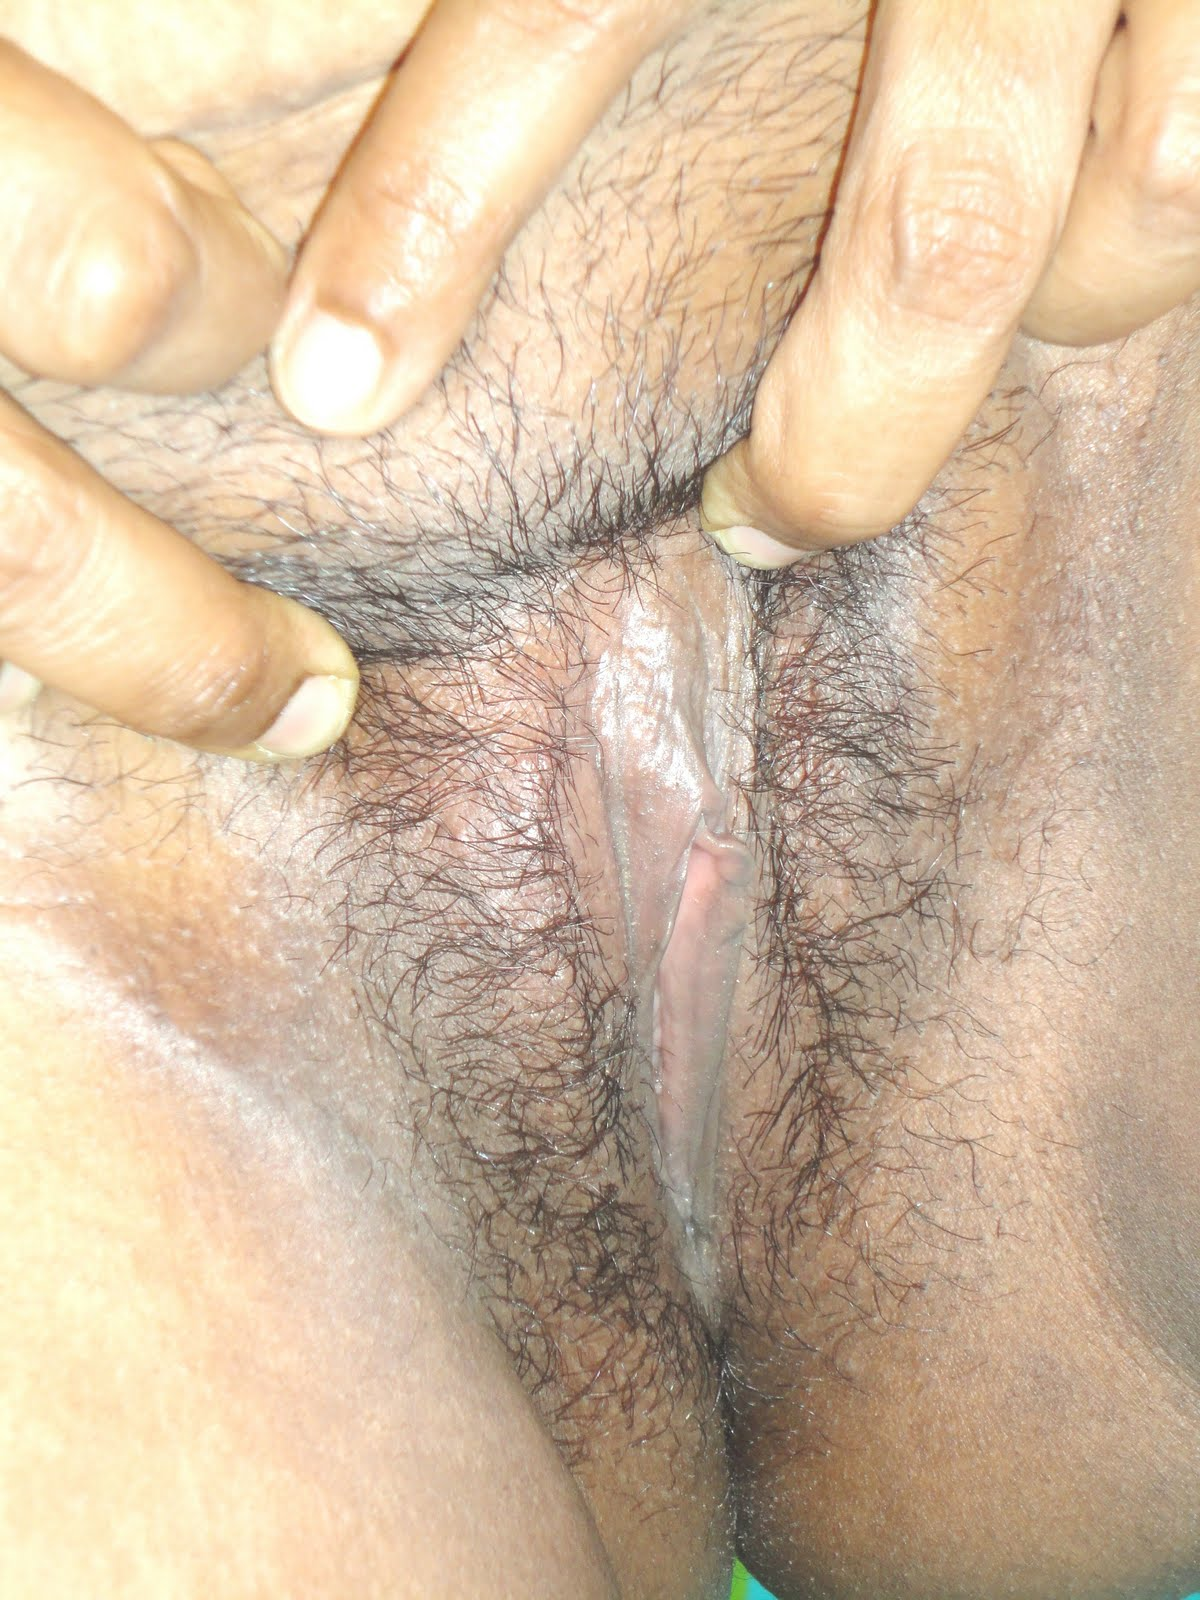 Indian wife pussy can